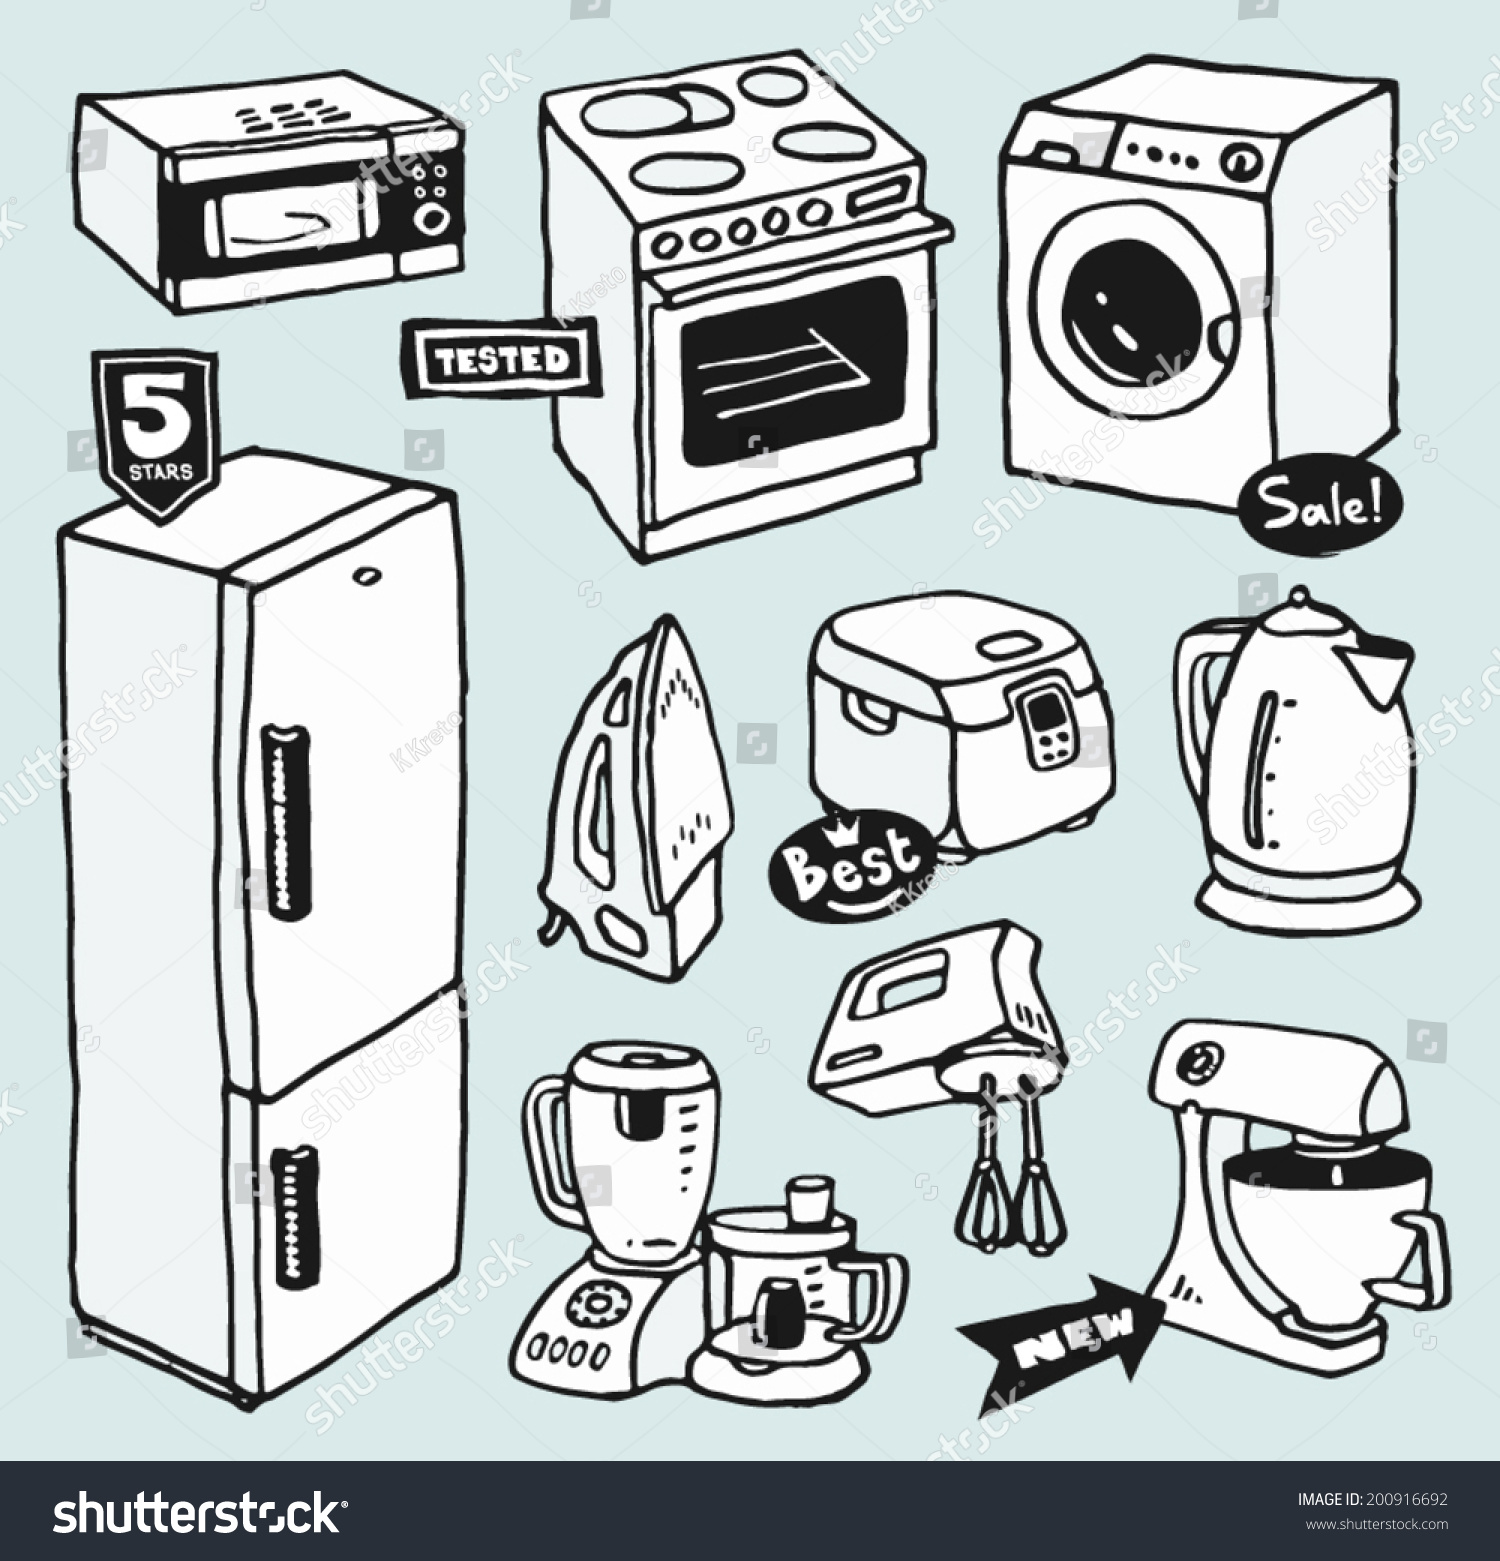 Cartoon Electric Cooker ~ Cartoon handdrawn household appliances cooking cleaning